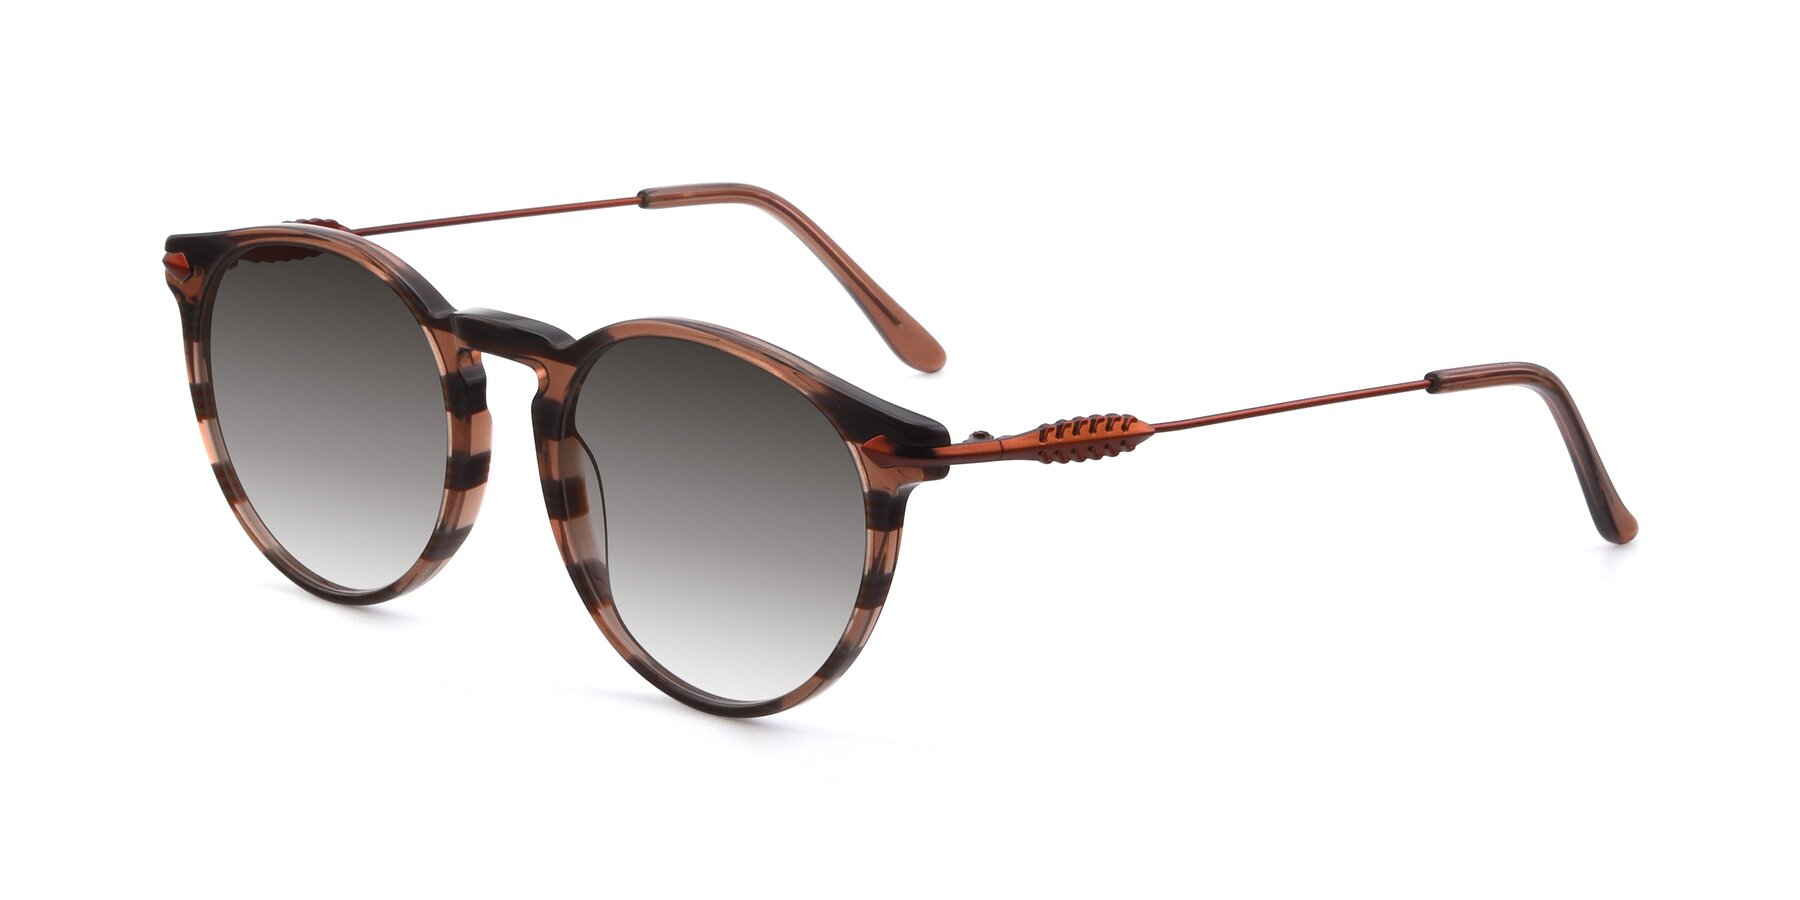 Angle of 17660 in Stripe Brown with Gray Gradient Lenses